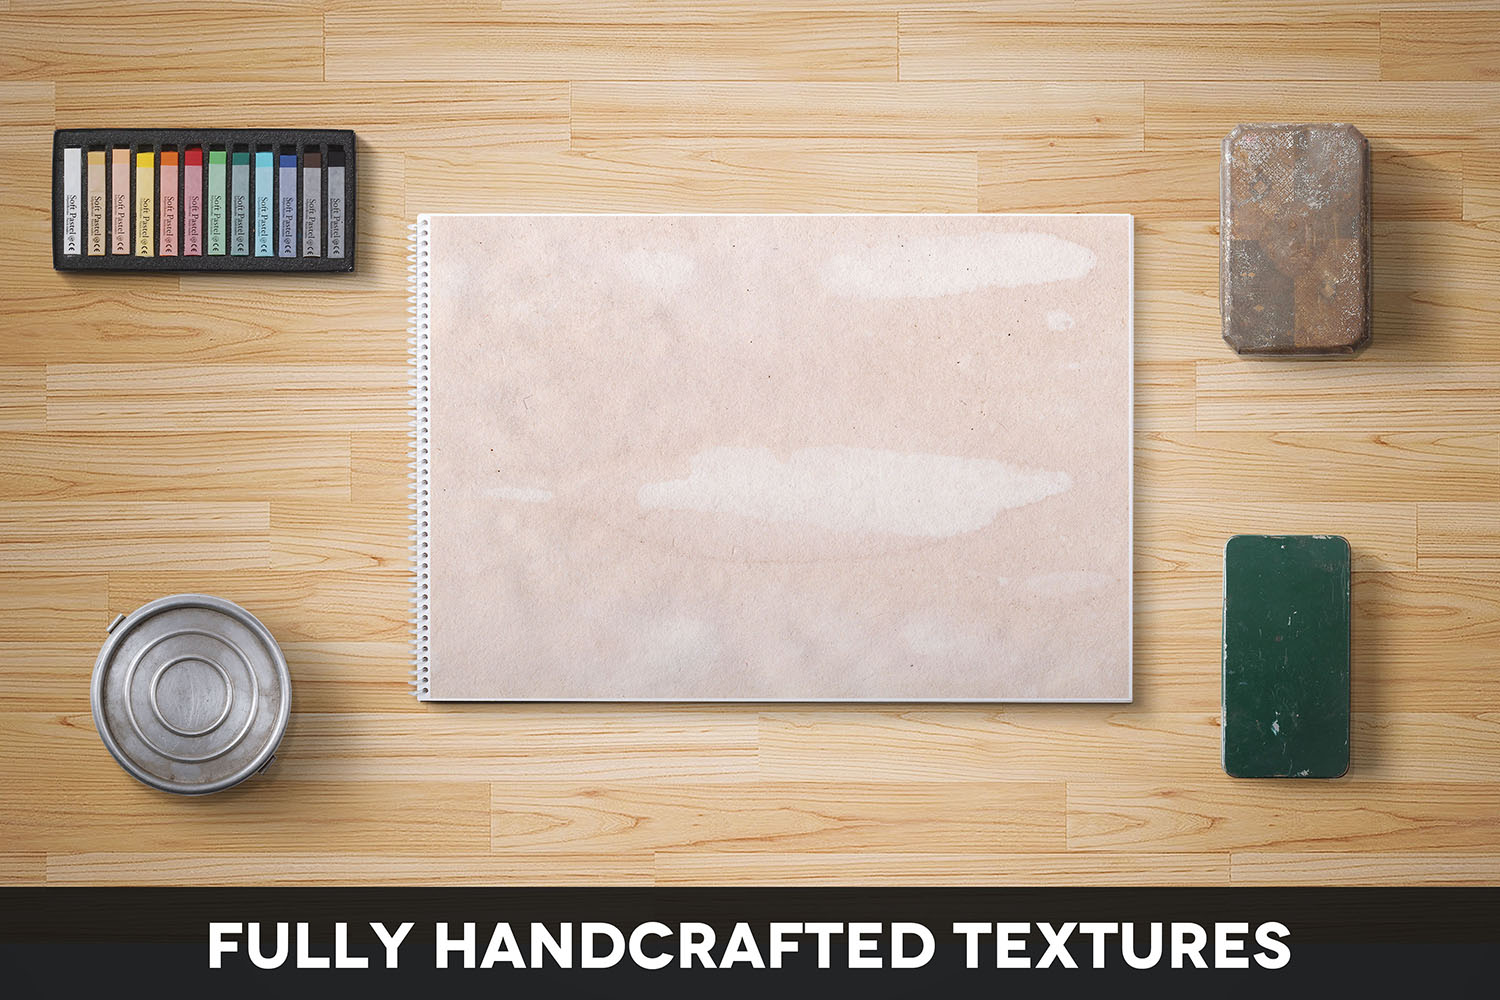 Handcrafted Vintage Paper Textures Vol. 02 example image 2